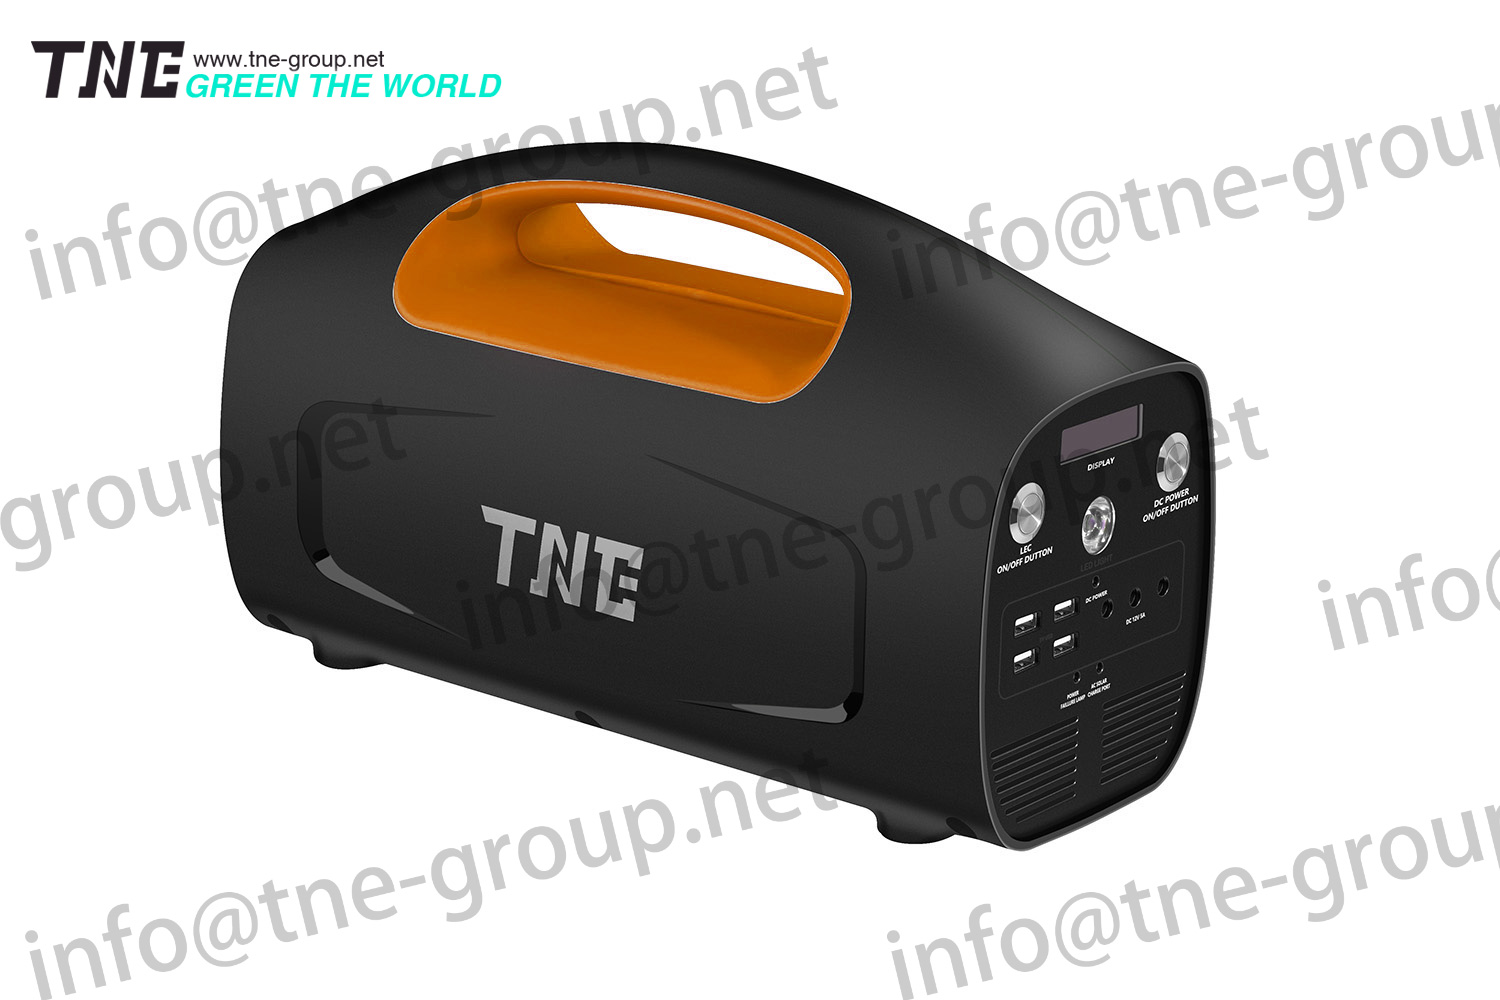 TNE Good quality 1000V Protable factory direct sale mini ups